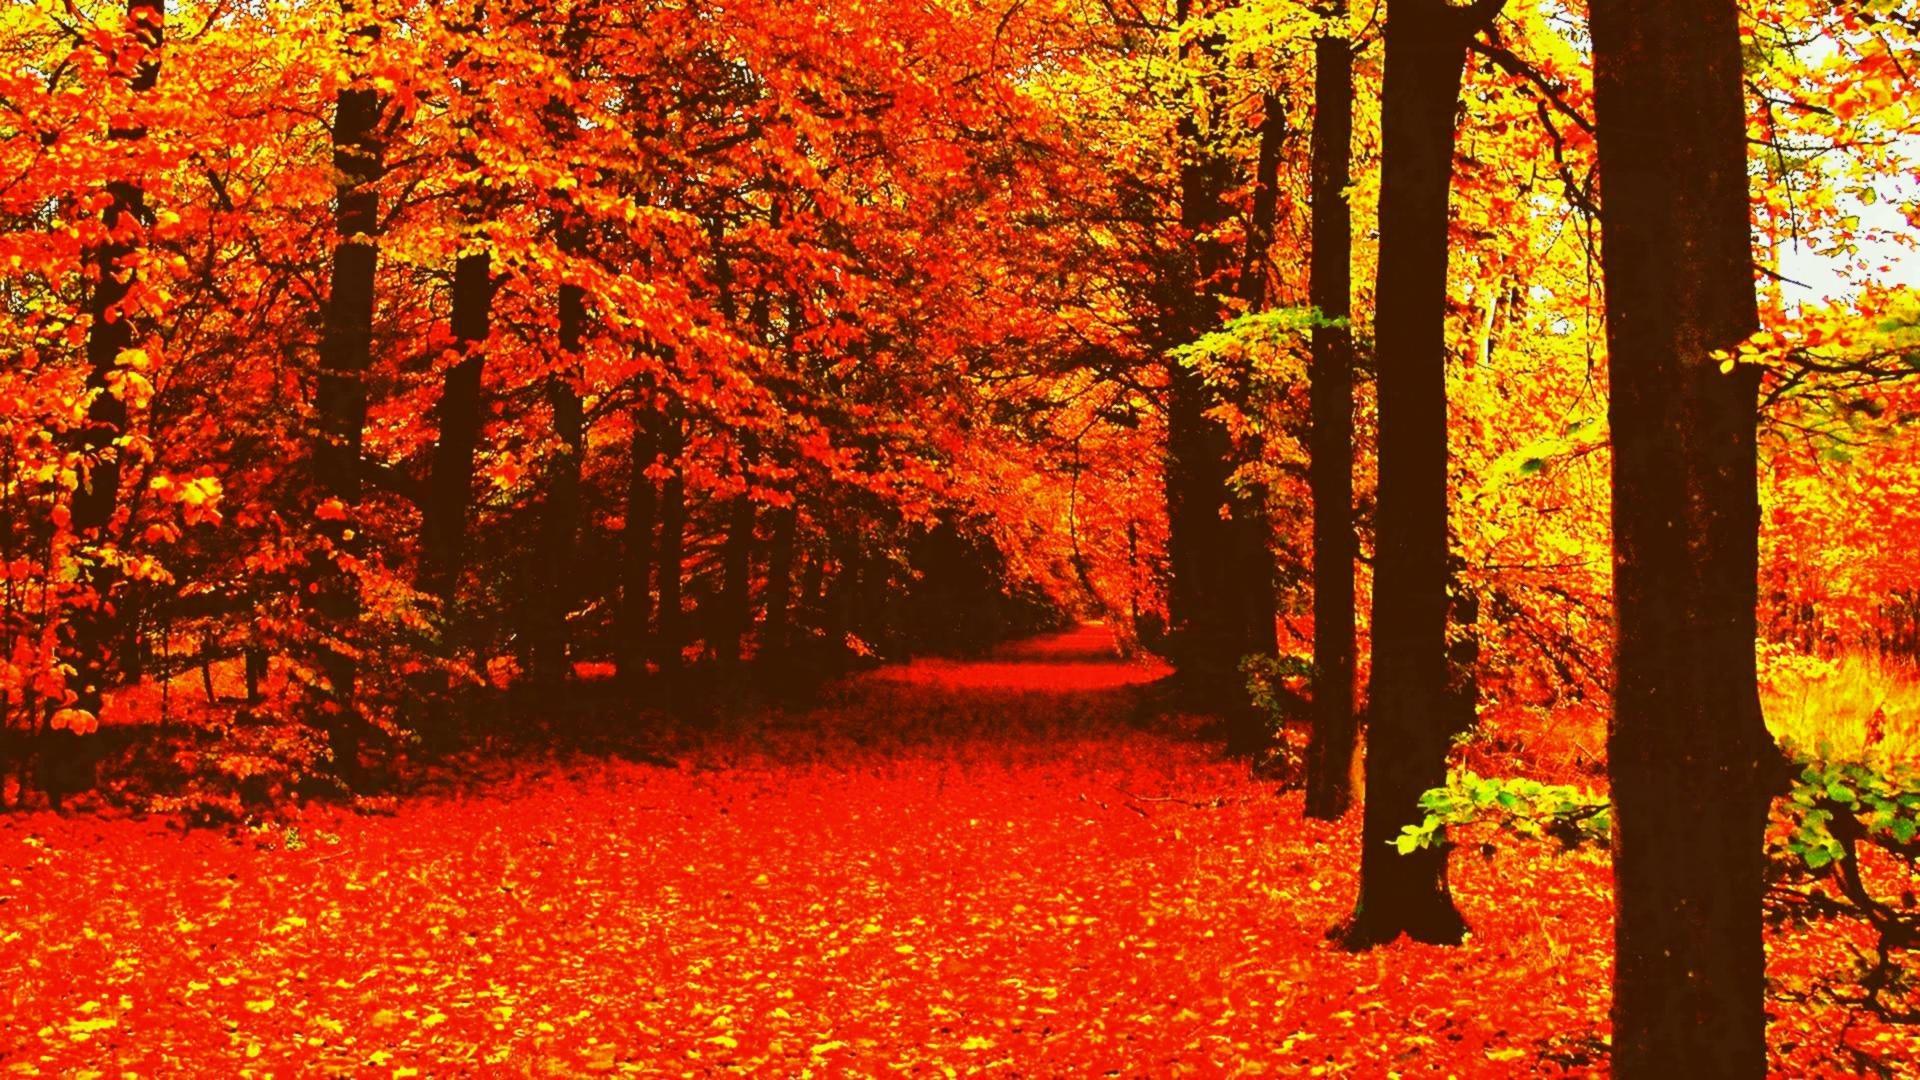 Aesthetic Fall Wallpaper Desktop